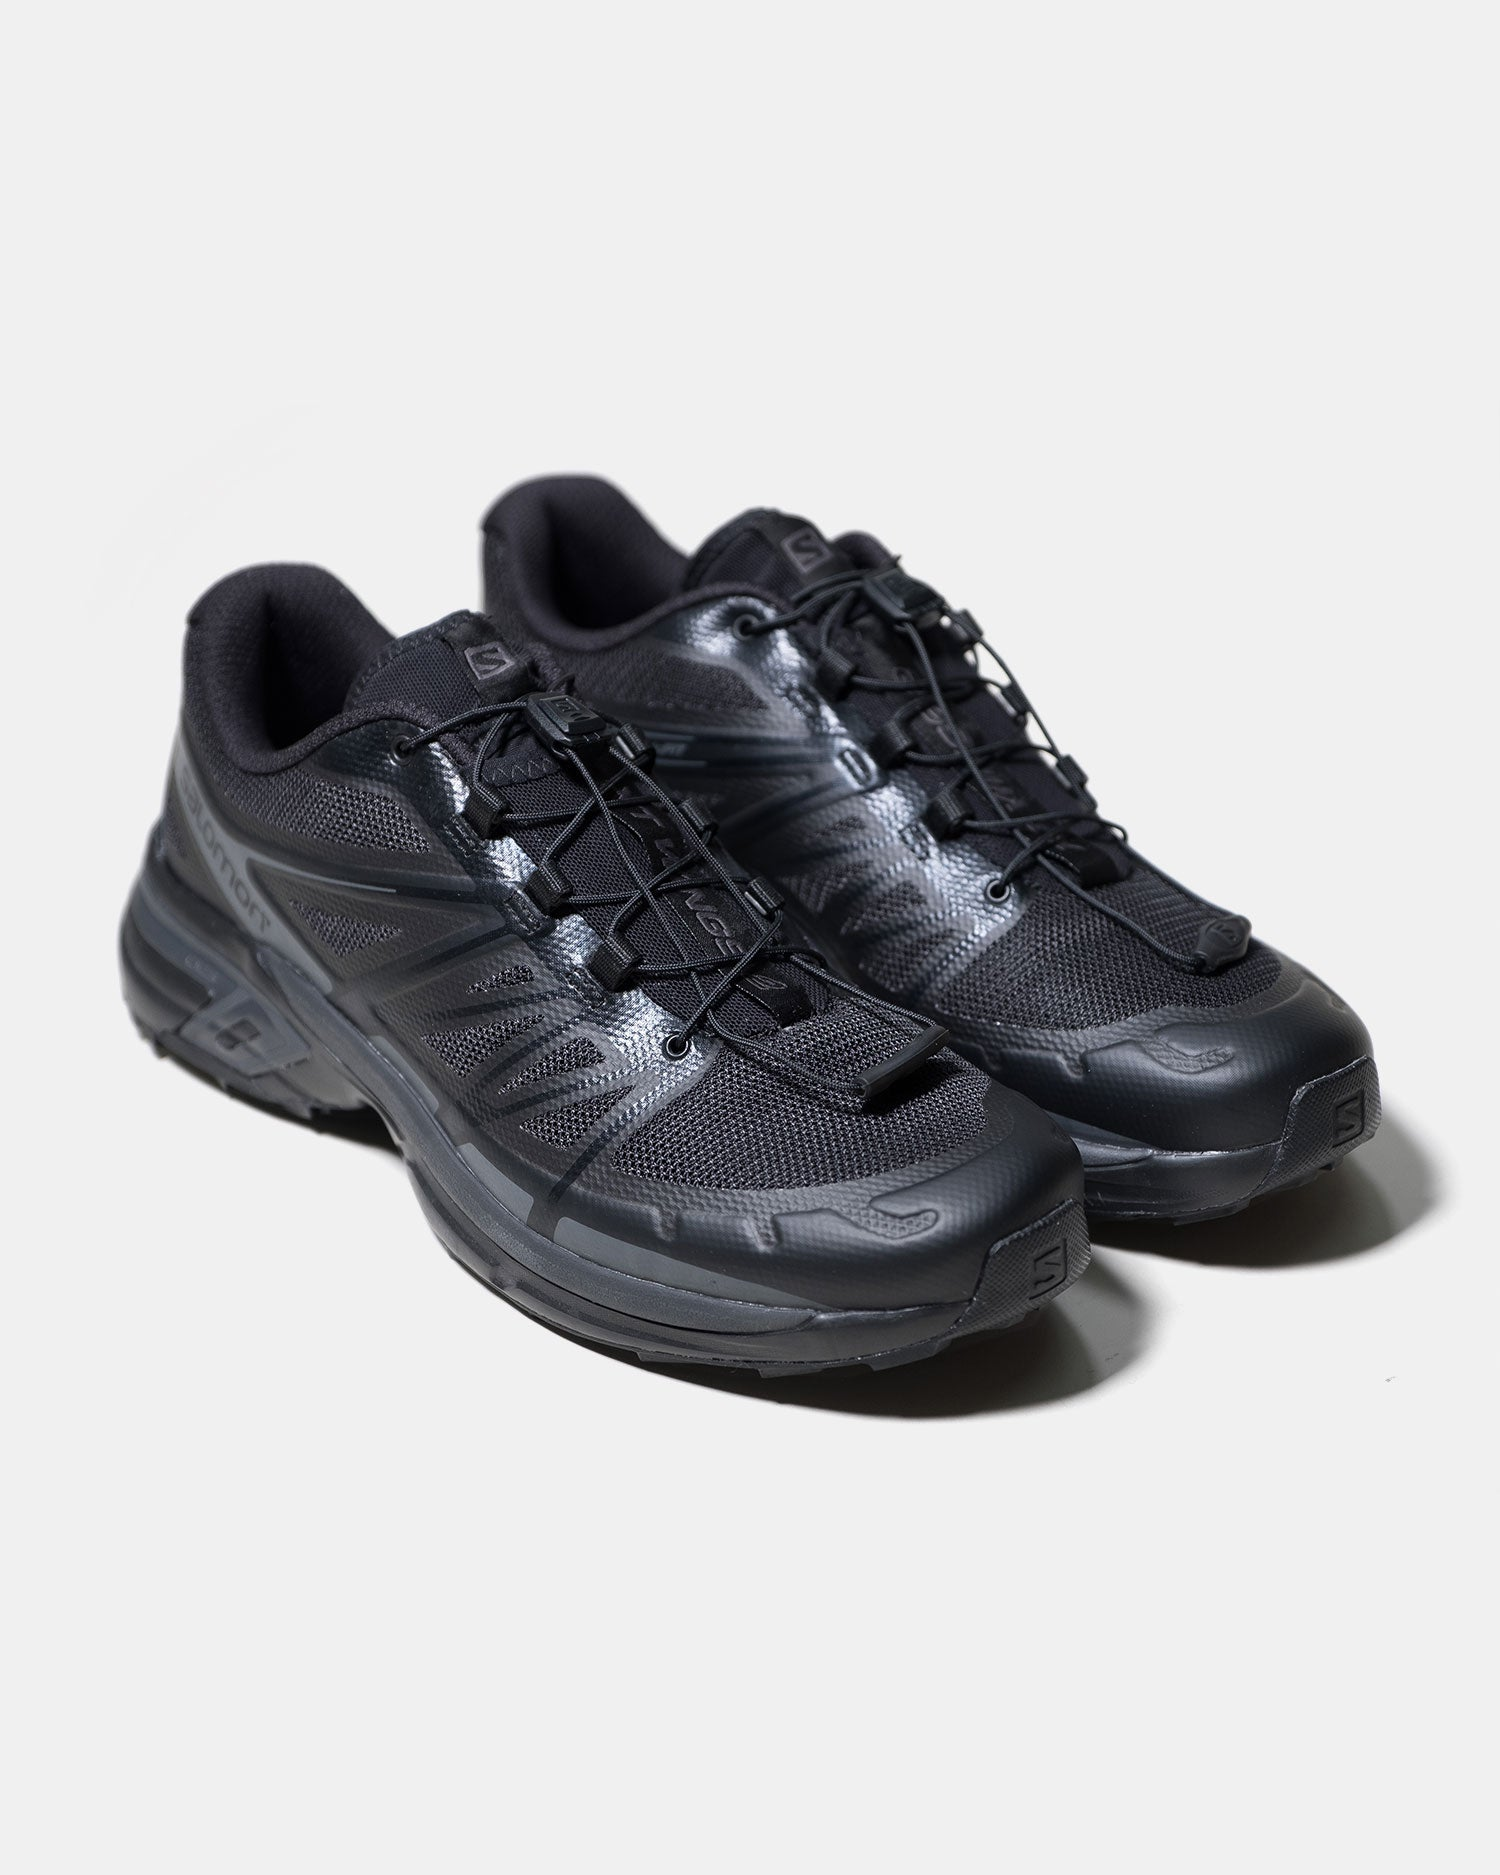 Salomon S/Lab XT Wings 2 Black